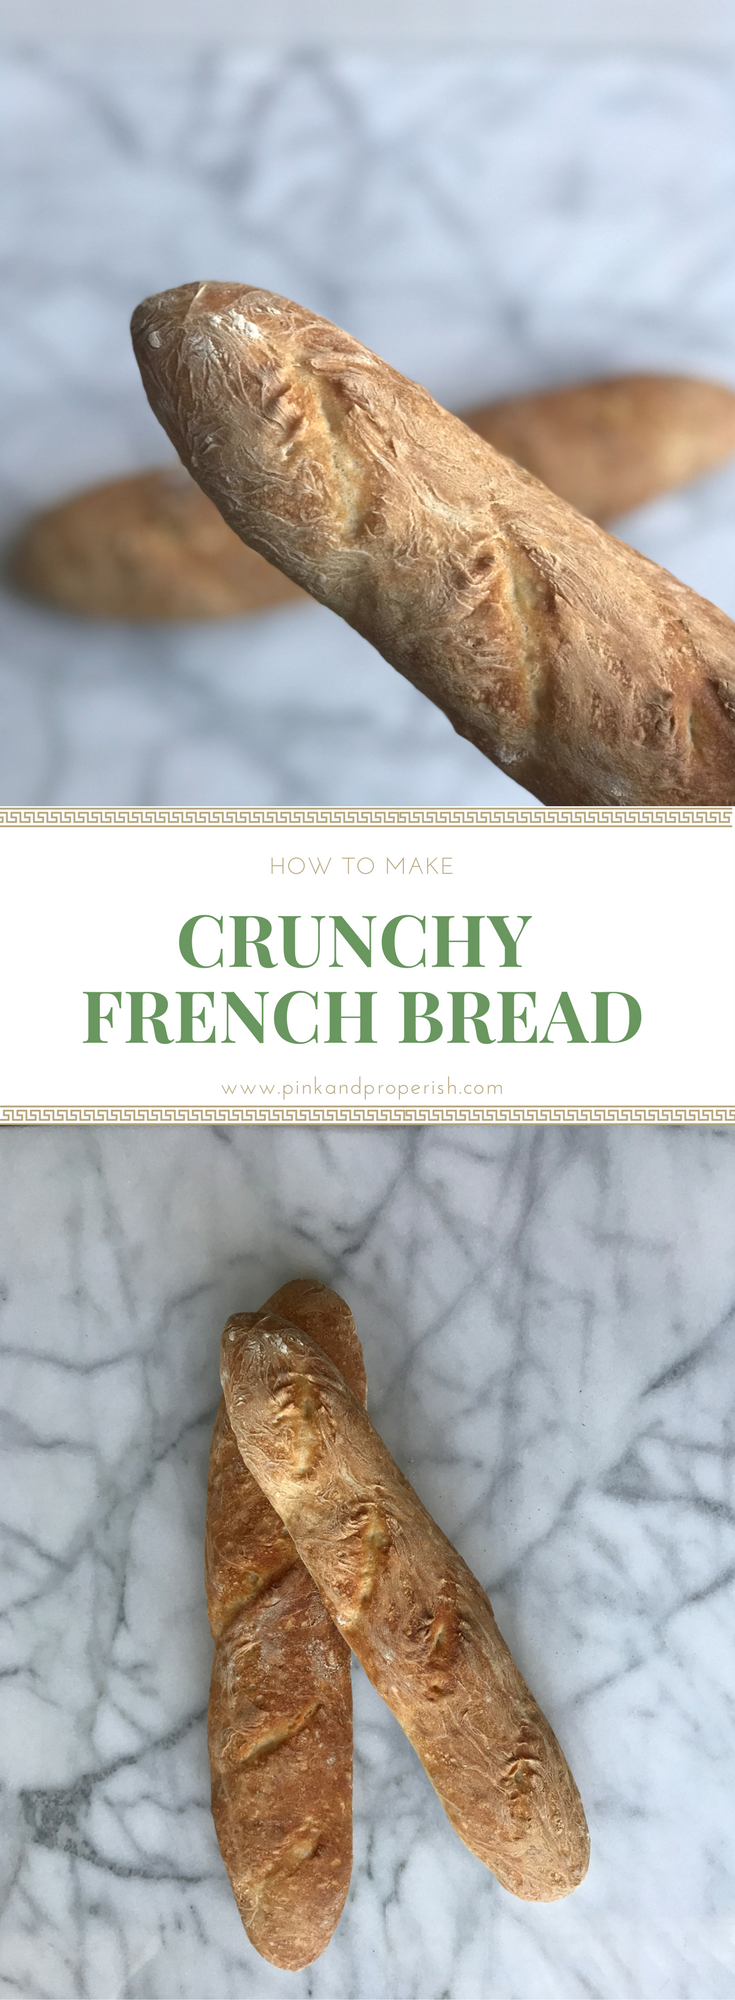 Learn how to make some delicious crunchy french bread! Making bread is actually a lot easier than you would think! This simple, 4 ingredient recipe will make the BEST french bread. Give it a try!